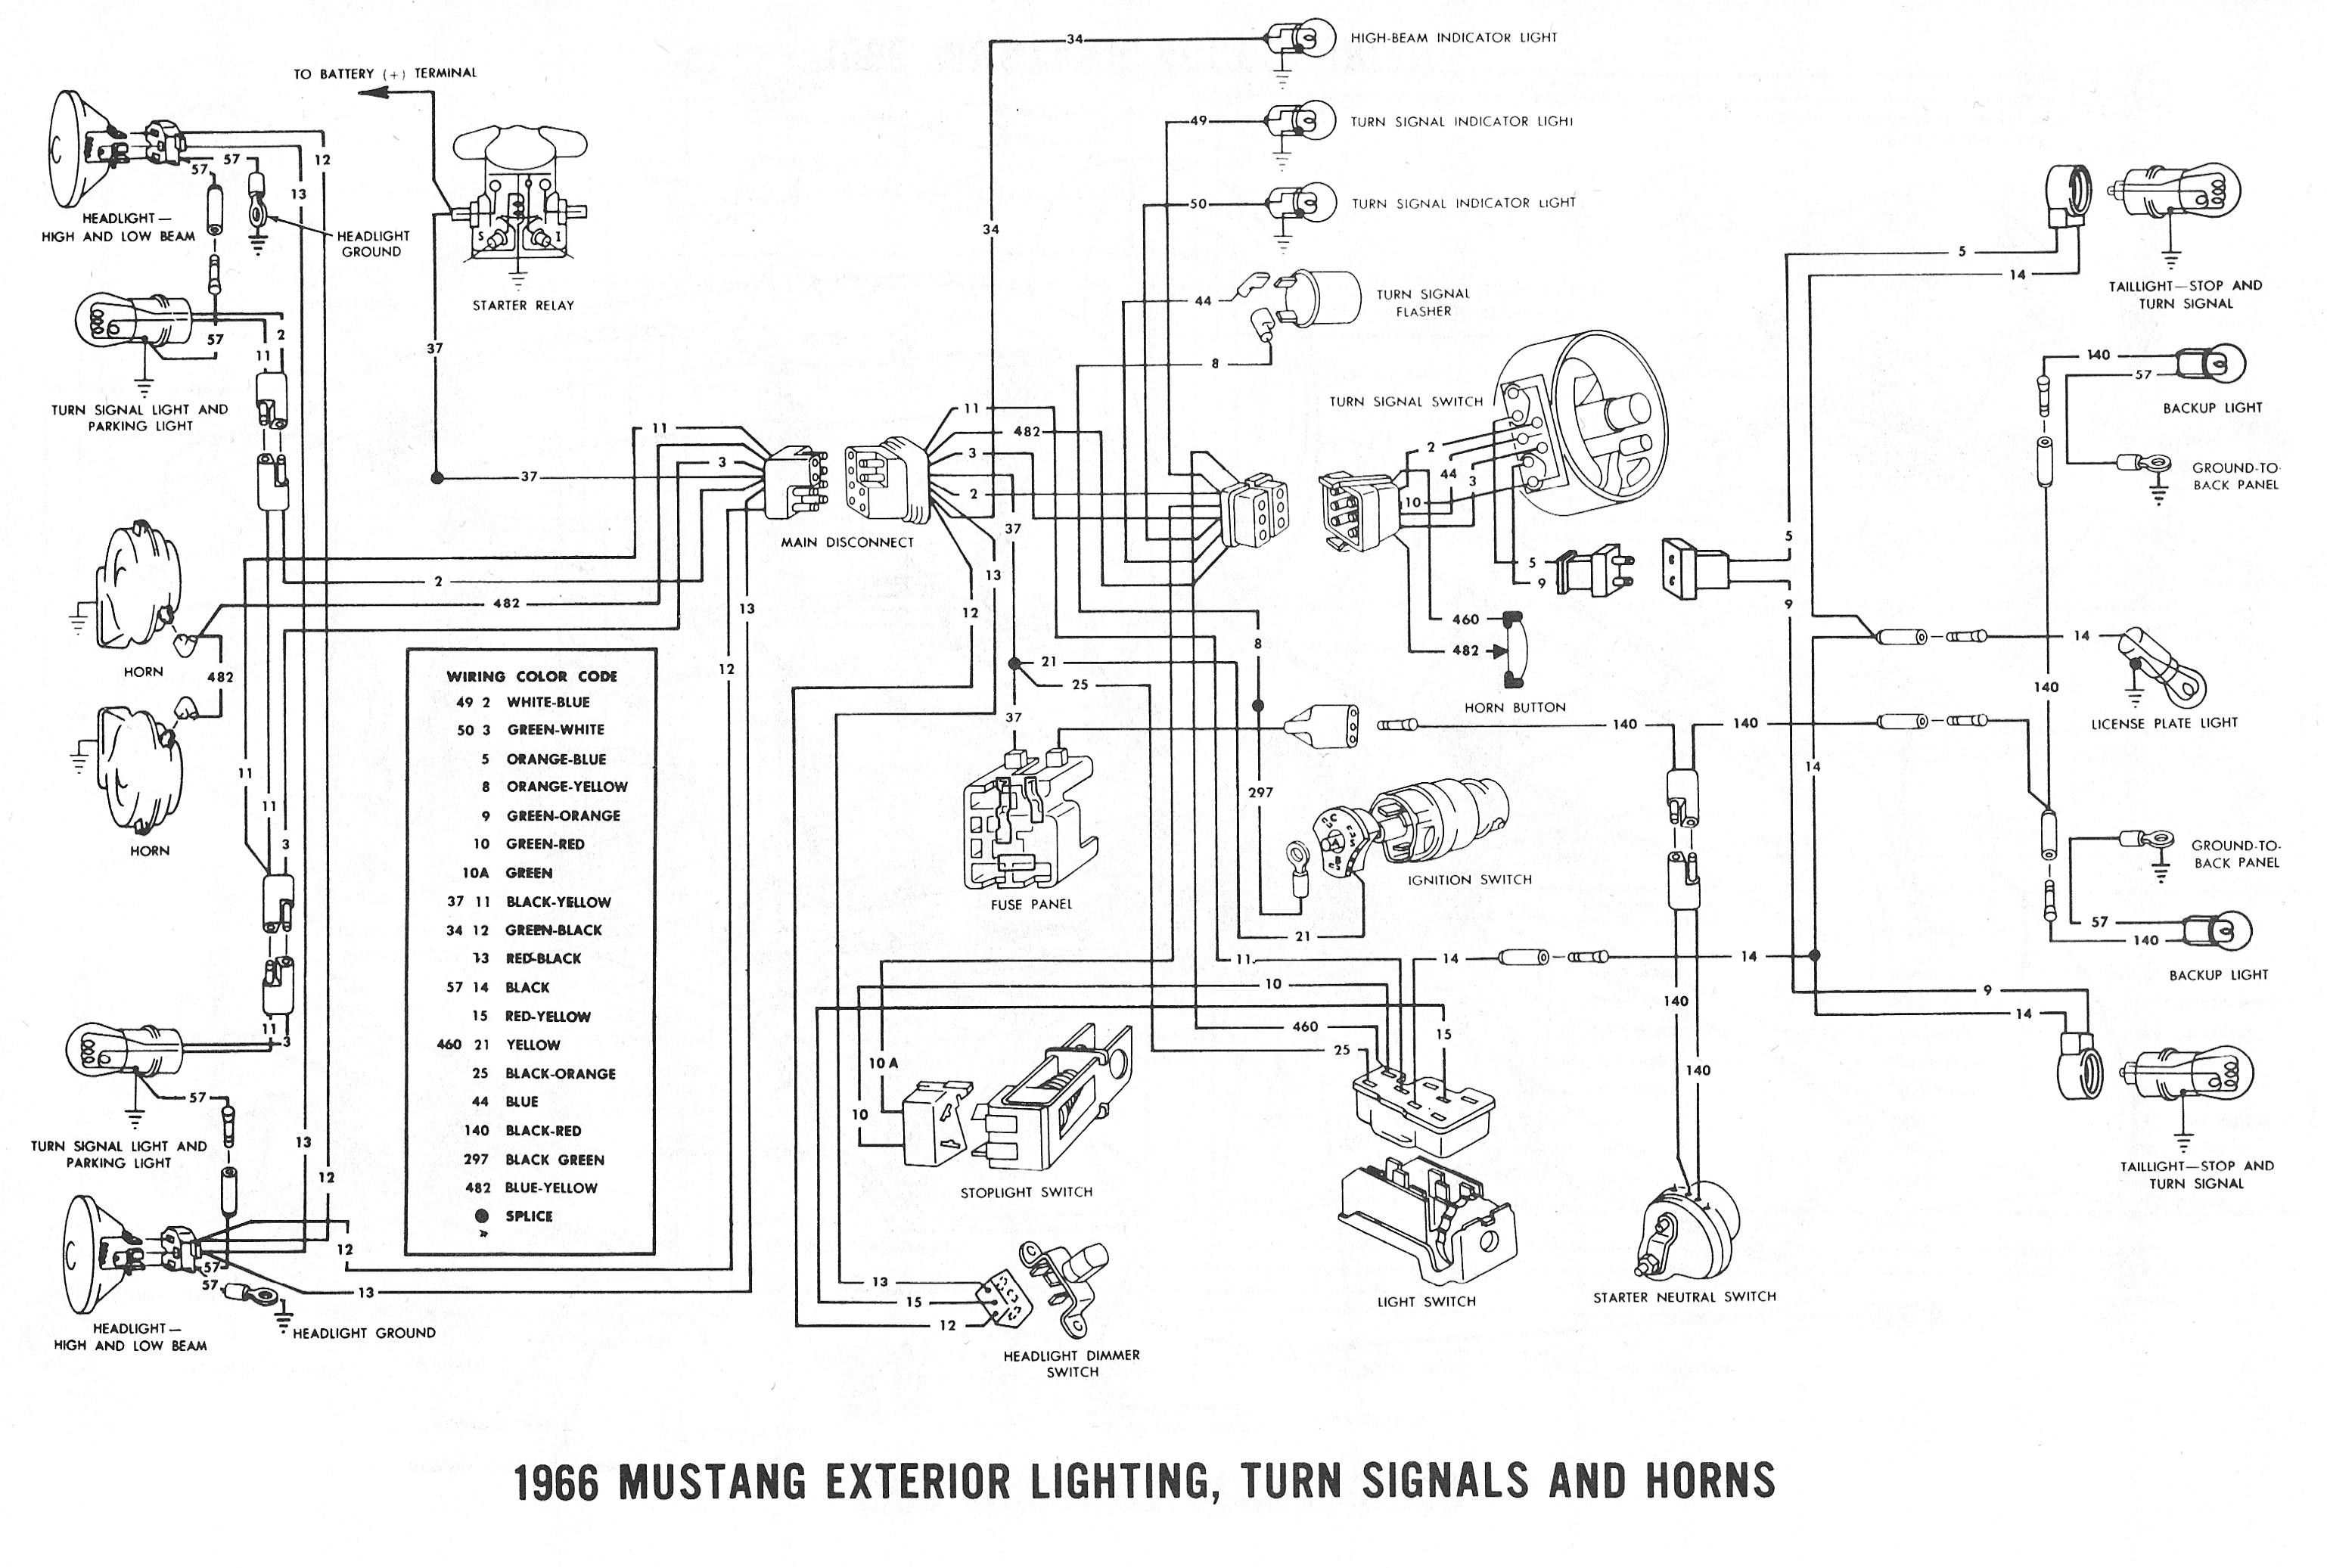 66 mustang wiring harness for heater wiring diagram verified  1966 ford mustang coupe wiring diagram #7